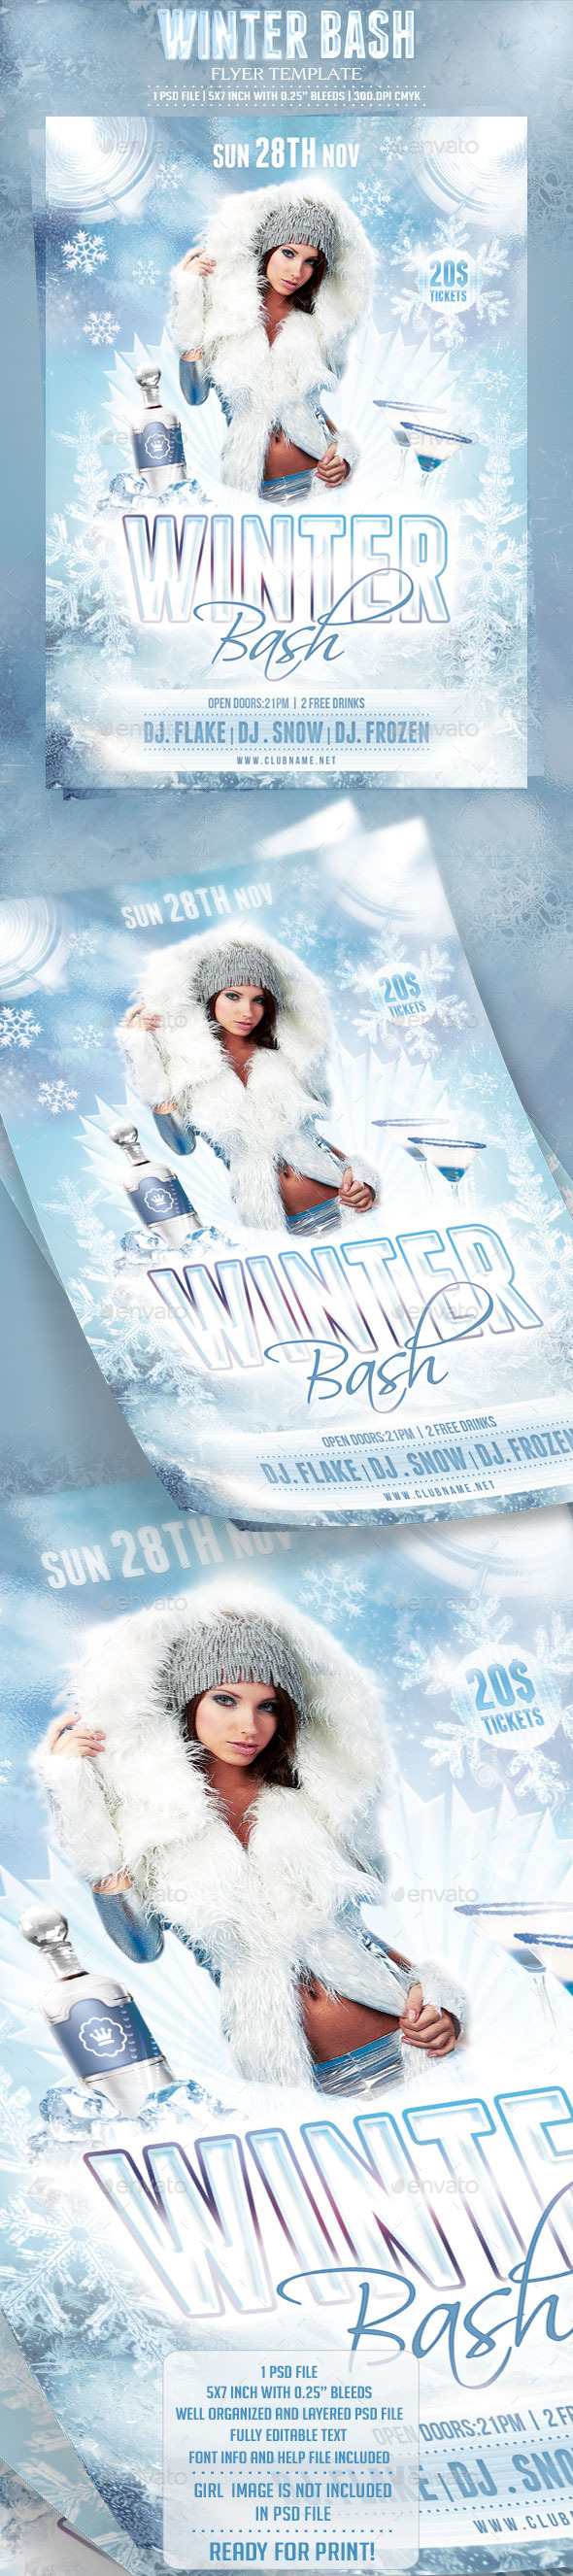 GraphicRiver Winter Bash Flyer Template 9264261